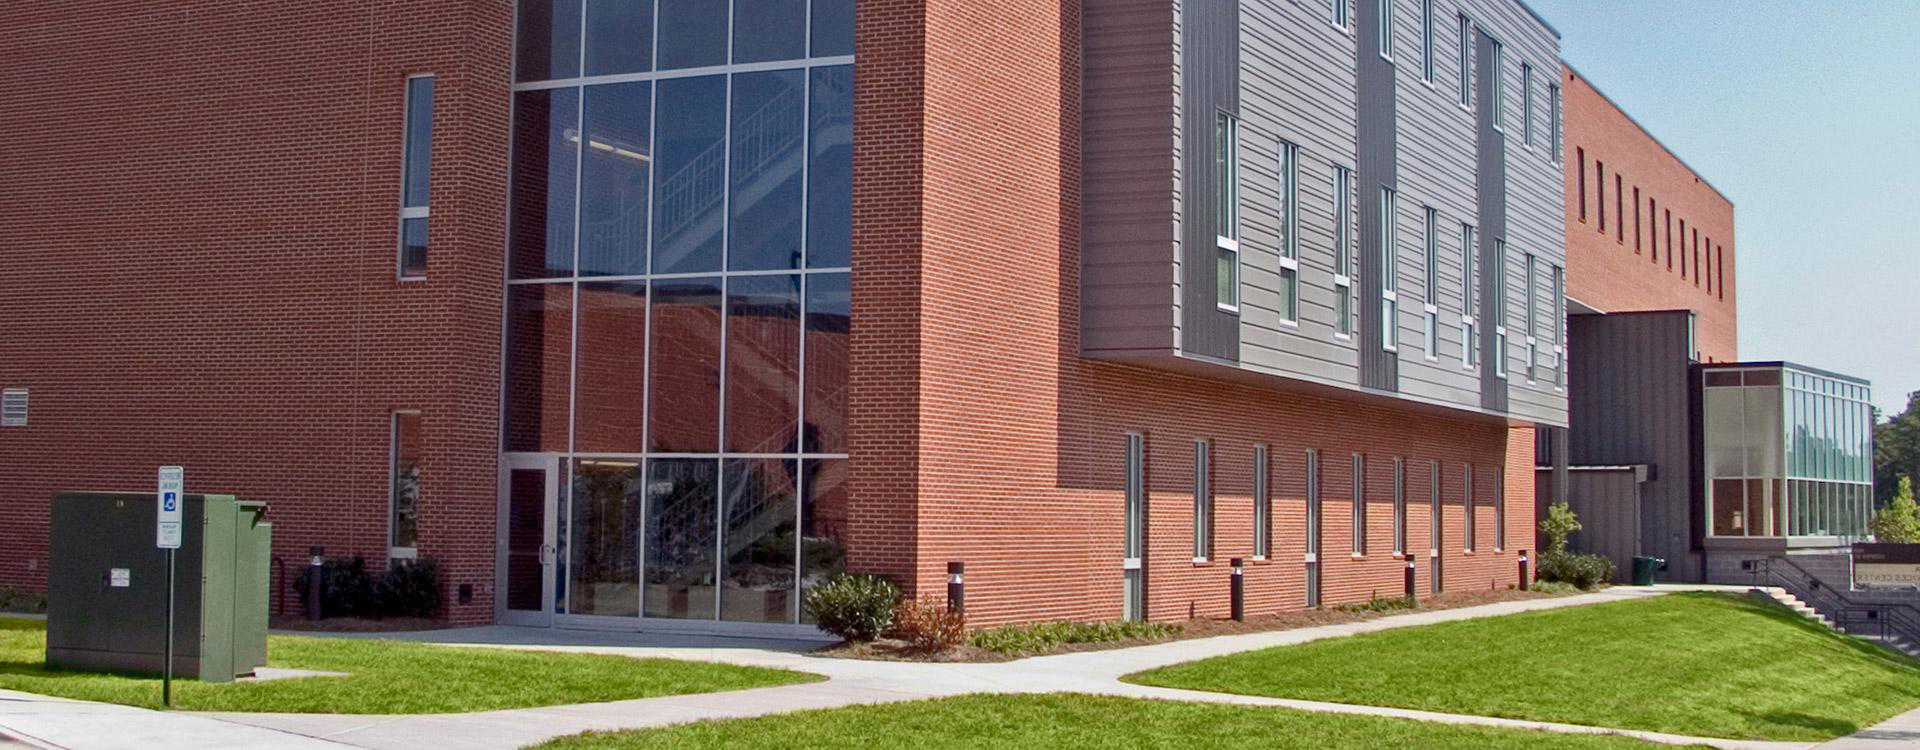 brick, gray panel, and glass campus building